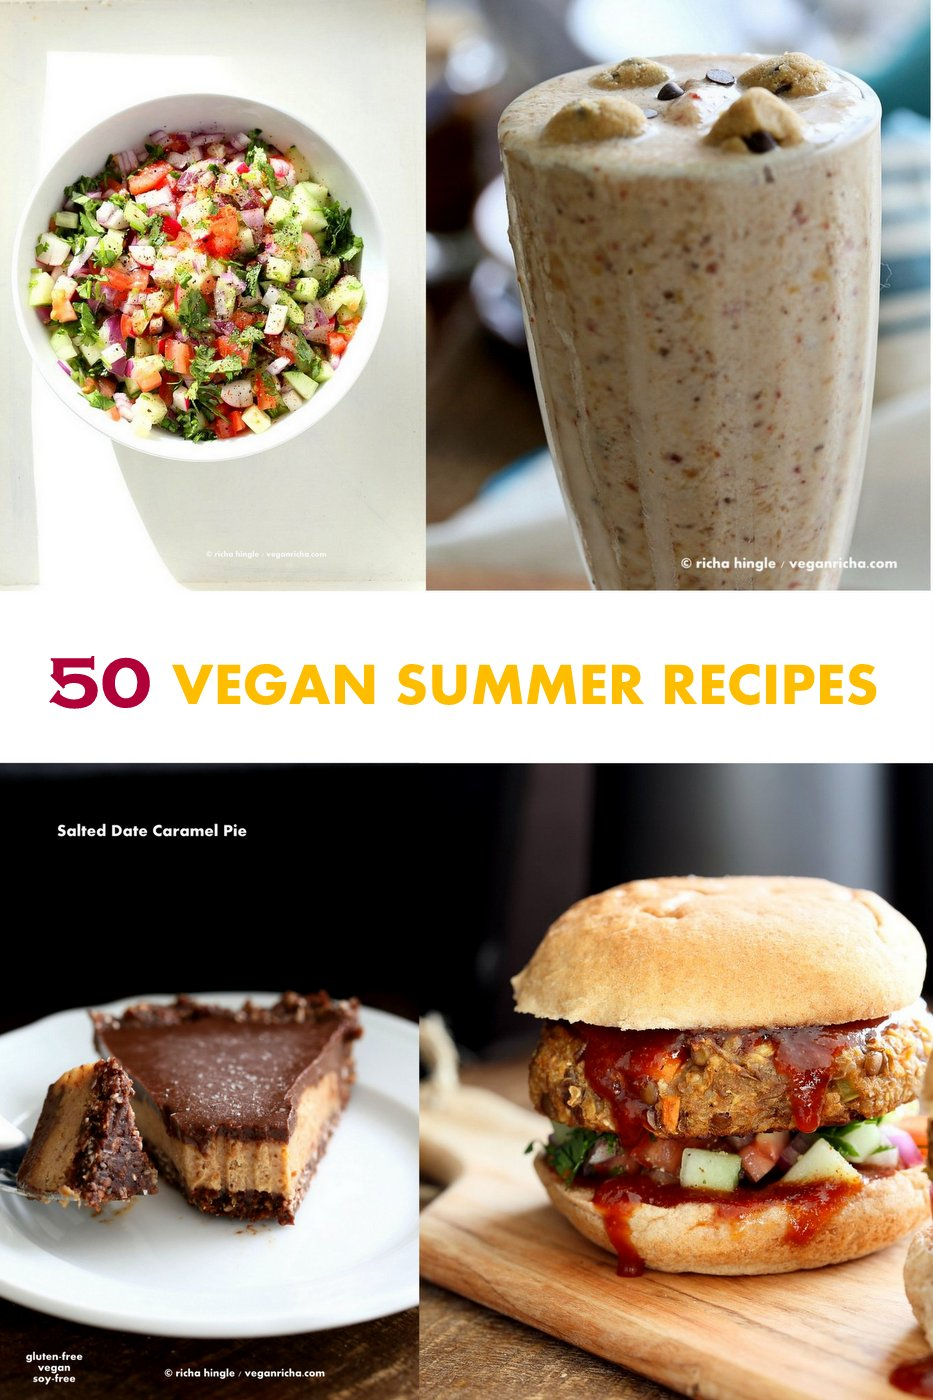 Vegan Summer Recipes for Barbecue, Grill, Picnics. Grill-able Burgers, filling Salads, Drinks, desserts, July 4th cookout menu. Summer Produce Recipes. Vegan Vegetarian Grilled Recipes. Vegan BBQ. Gluten-free Soy-free Options| VeganRicha.com